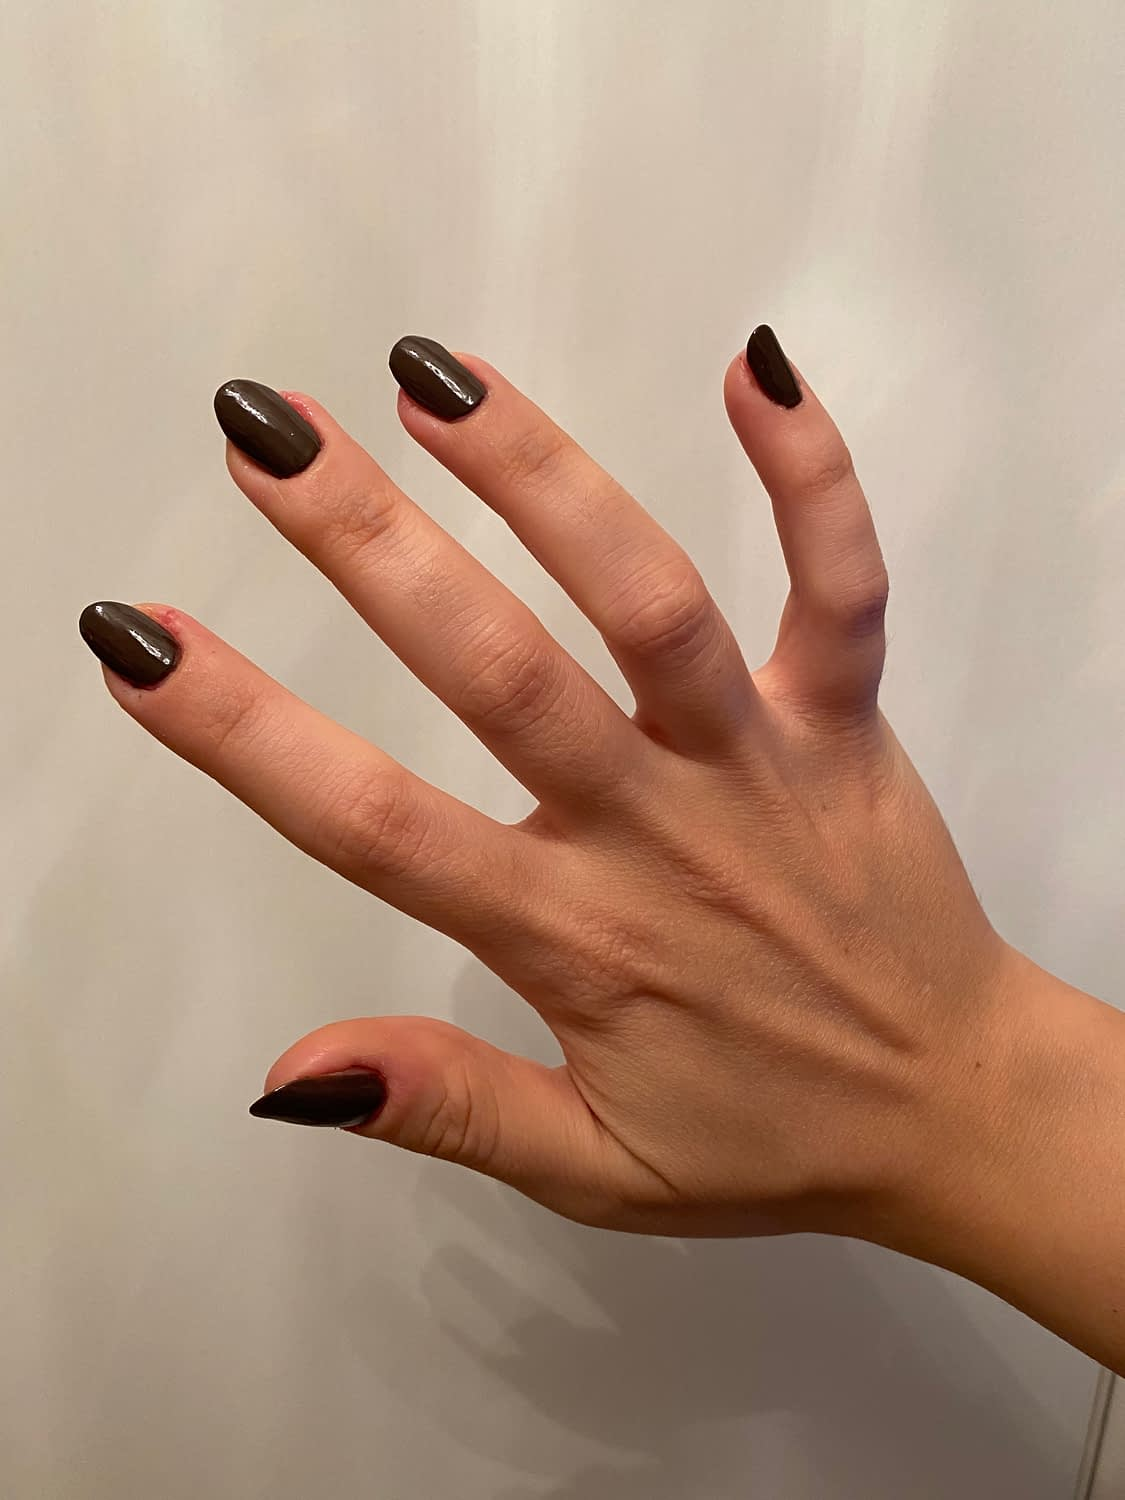 The unexpected nail color